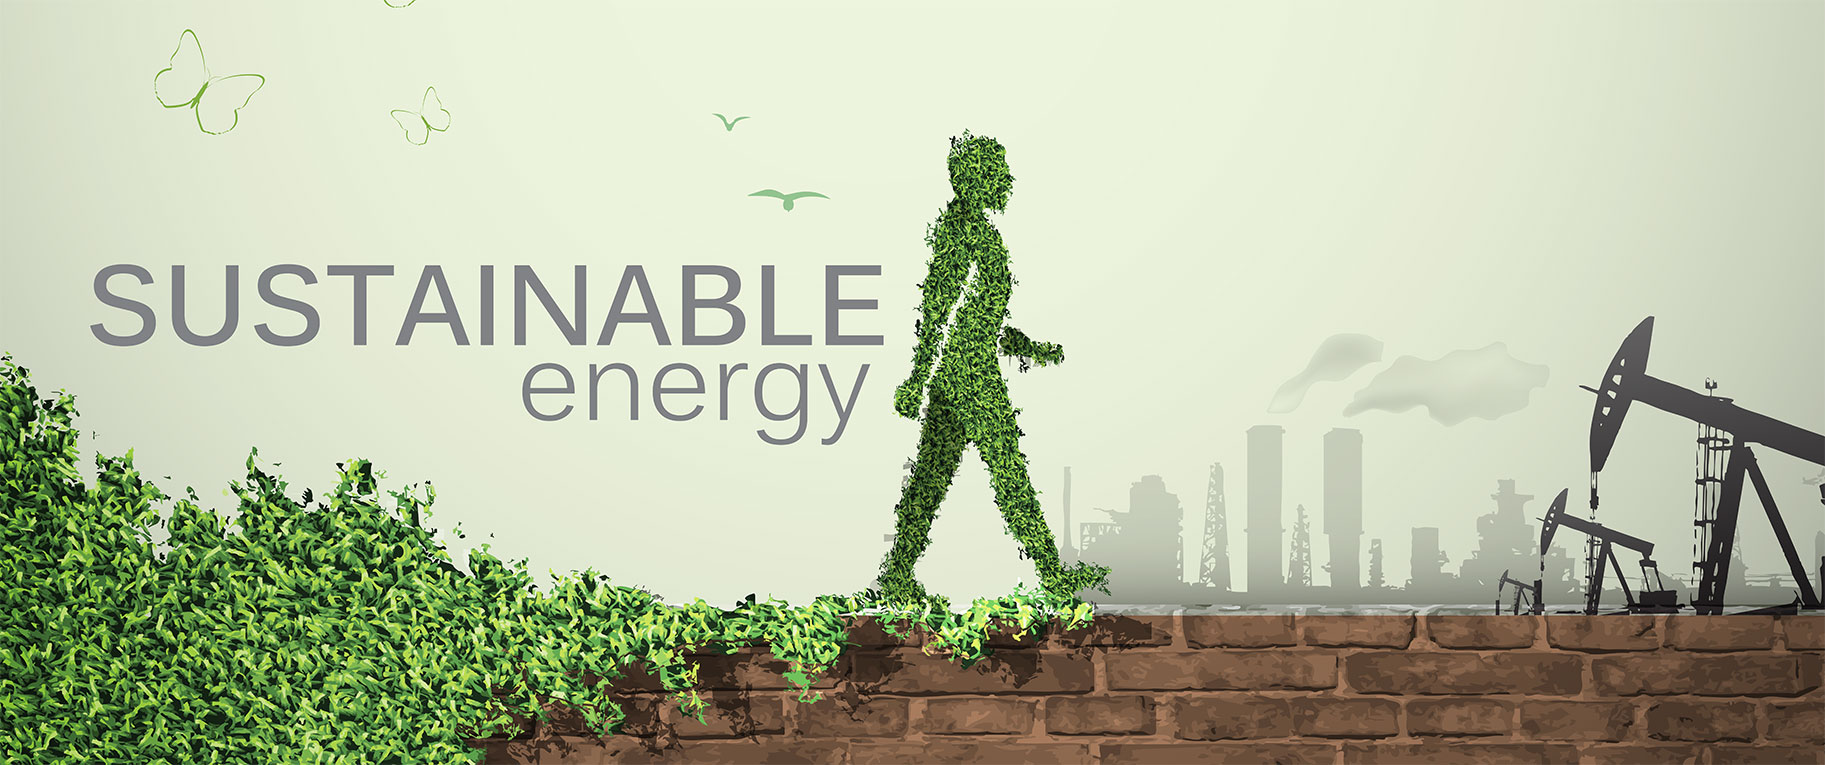 SUSTAINABLE-ENERGY-GREEN-MAN